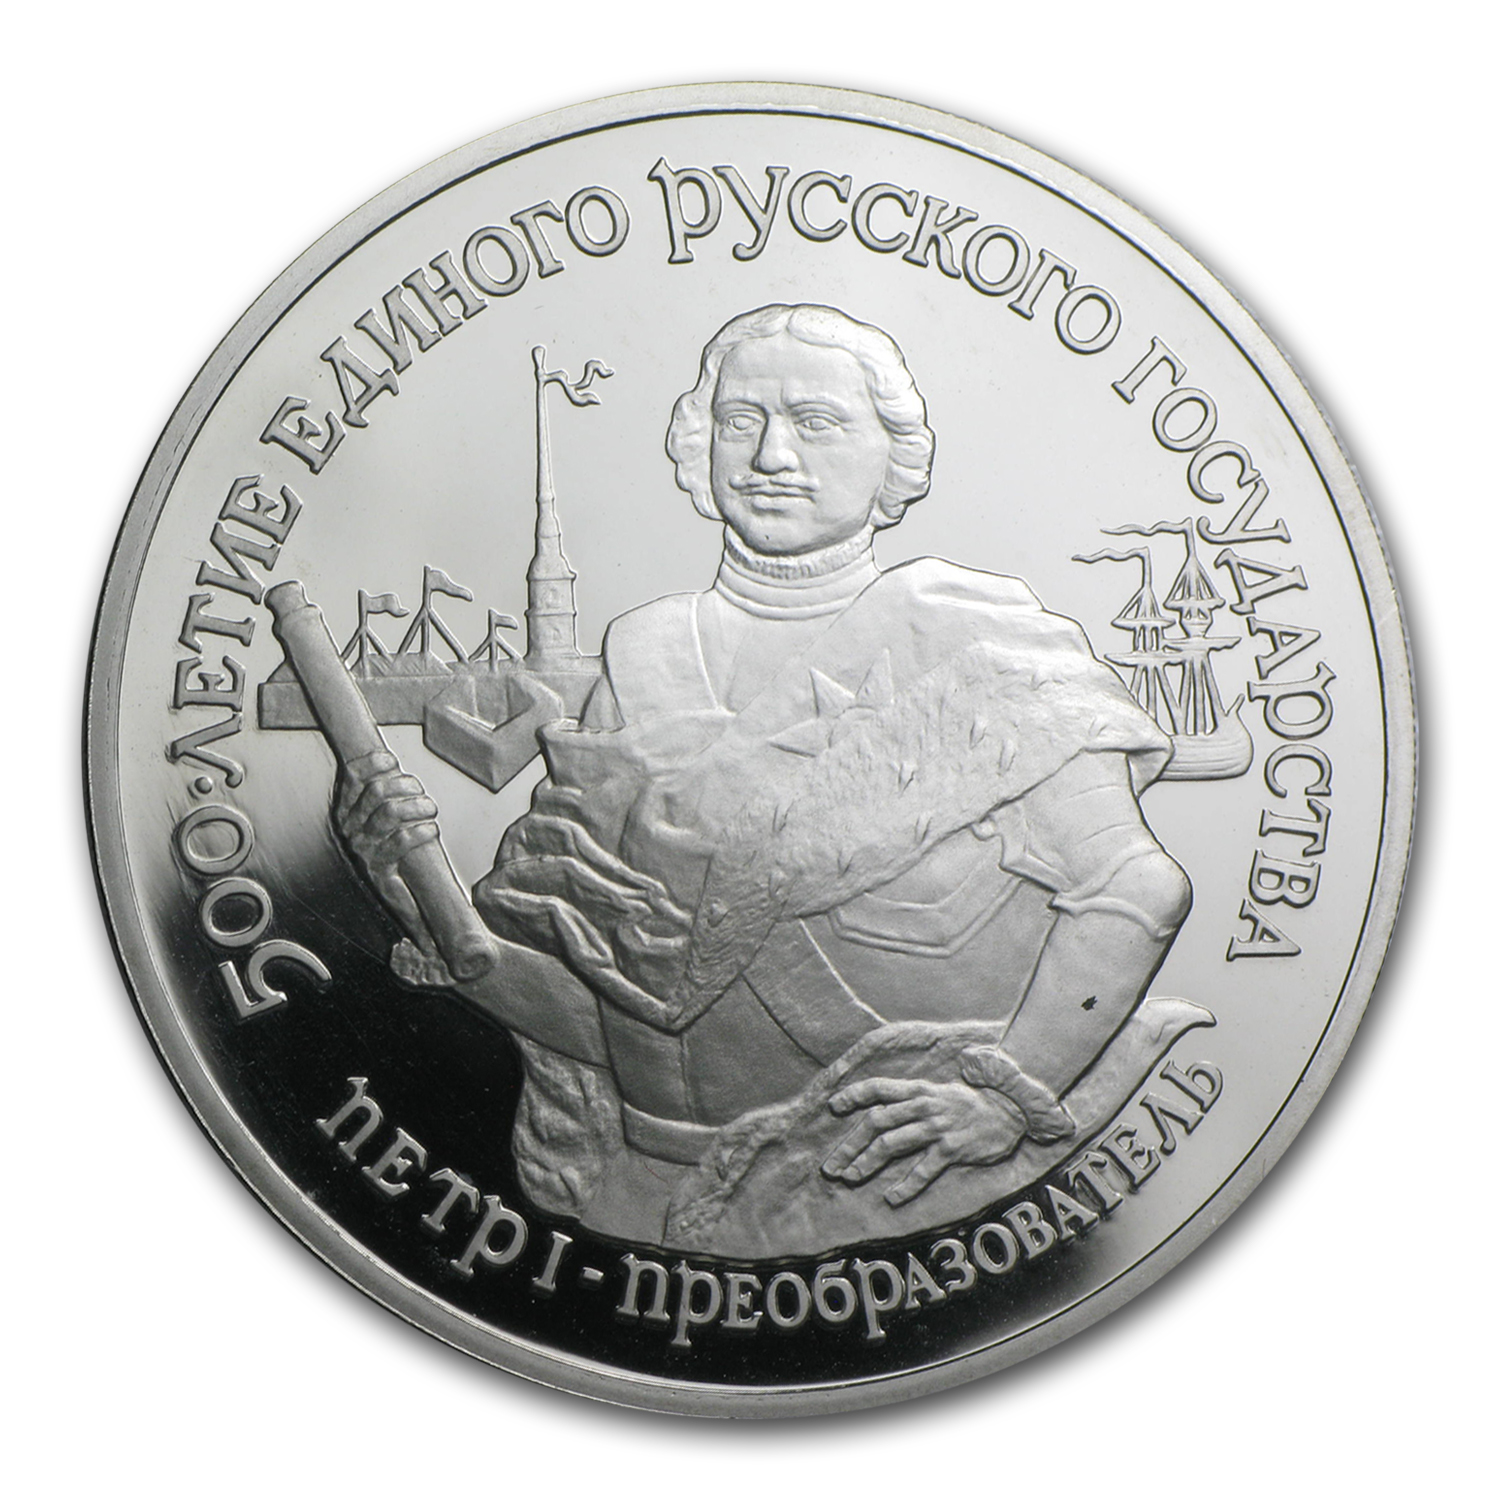 1990 Russia Proof 1 oz Palladium Peter The Great